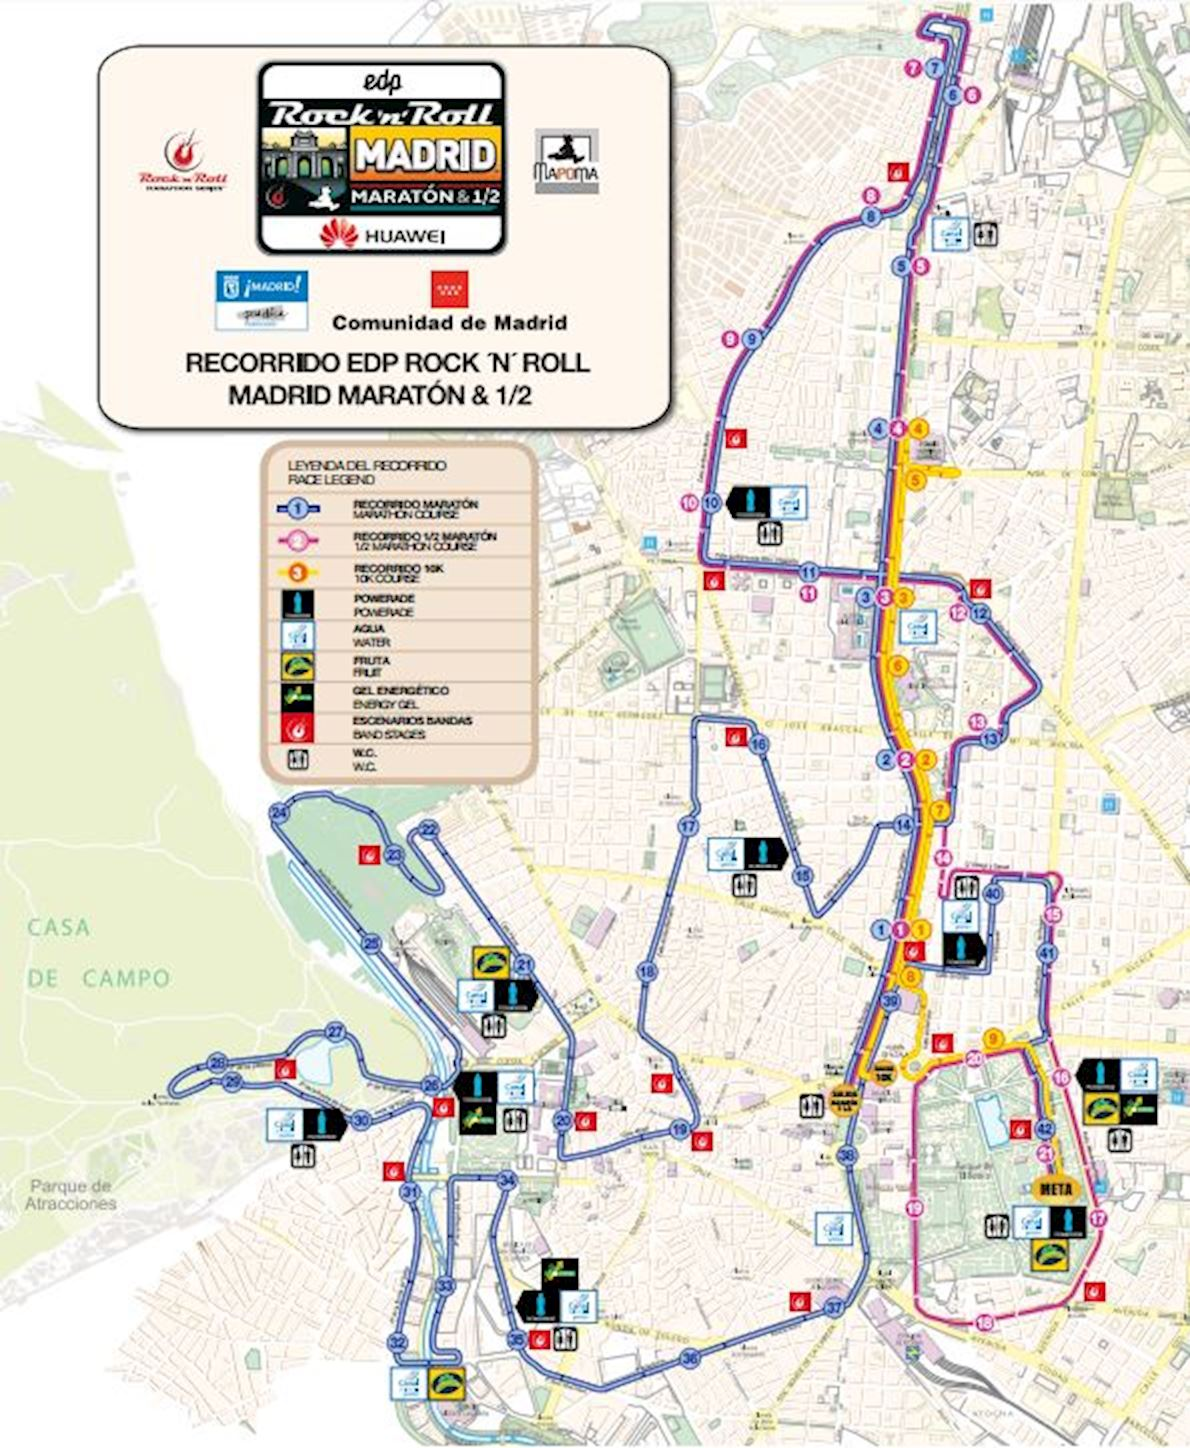 Rock 'n' Roll Madrid Marathon & 1/2 路线图